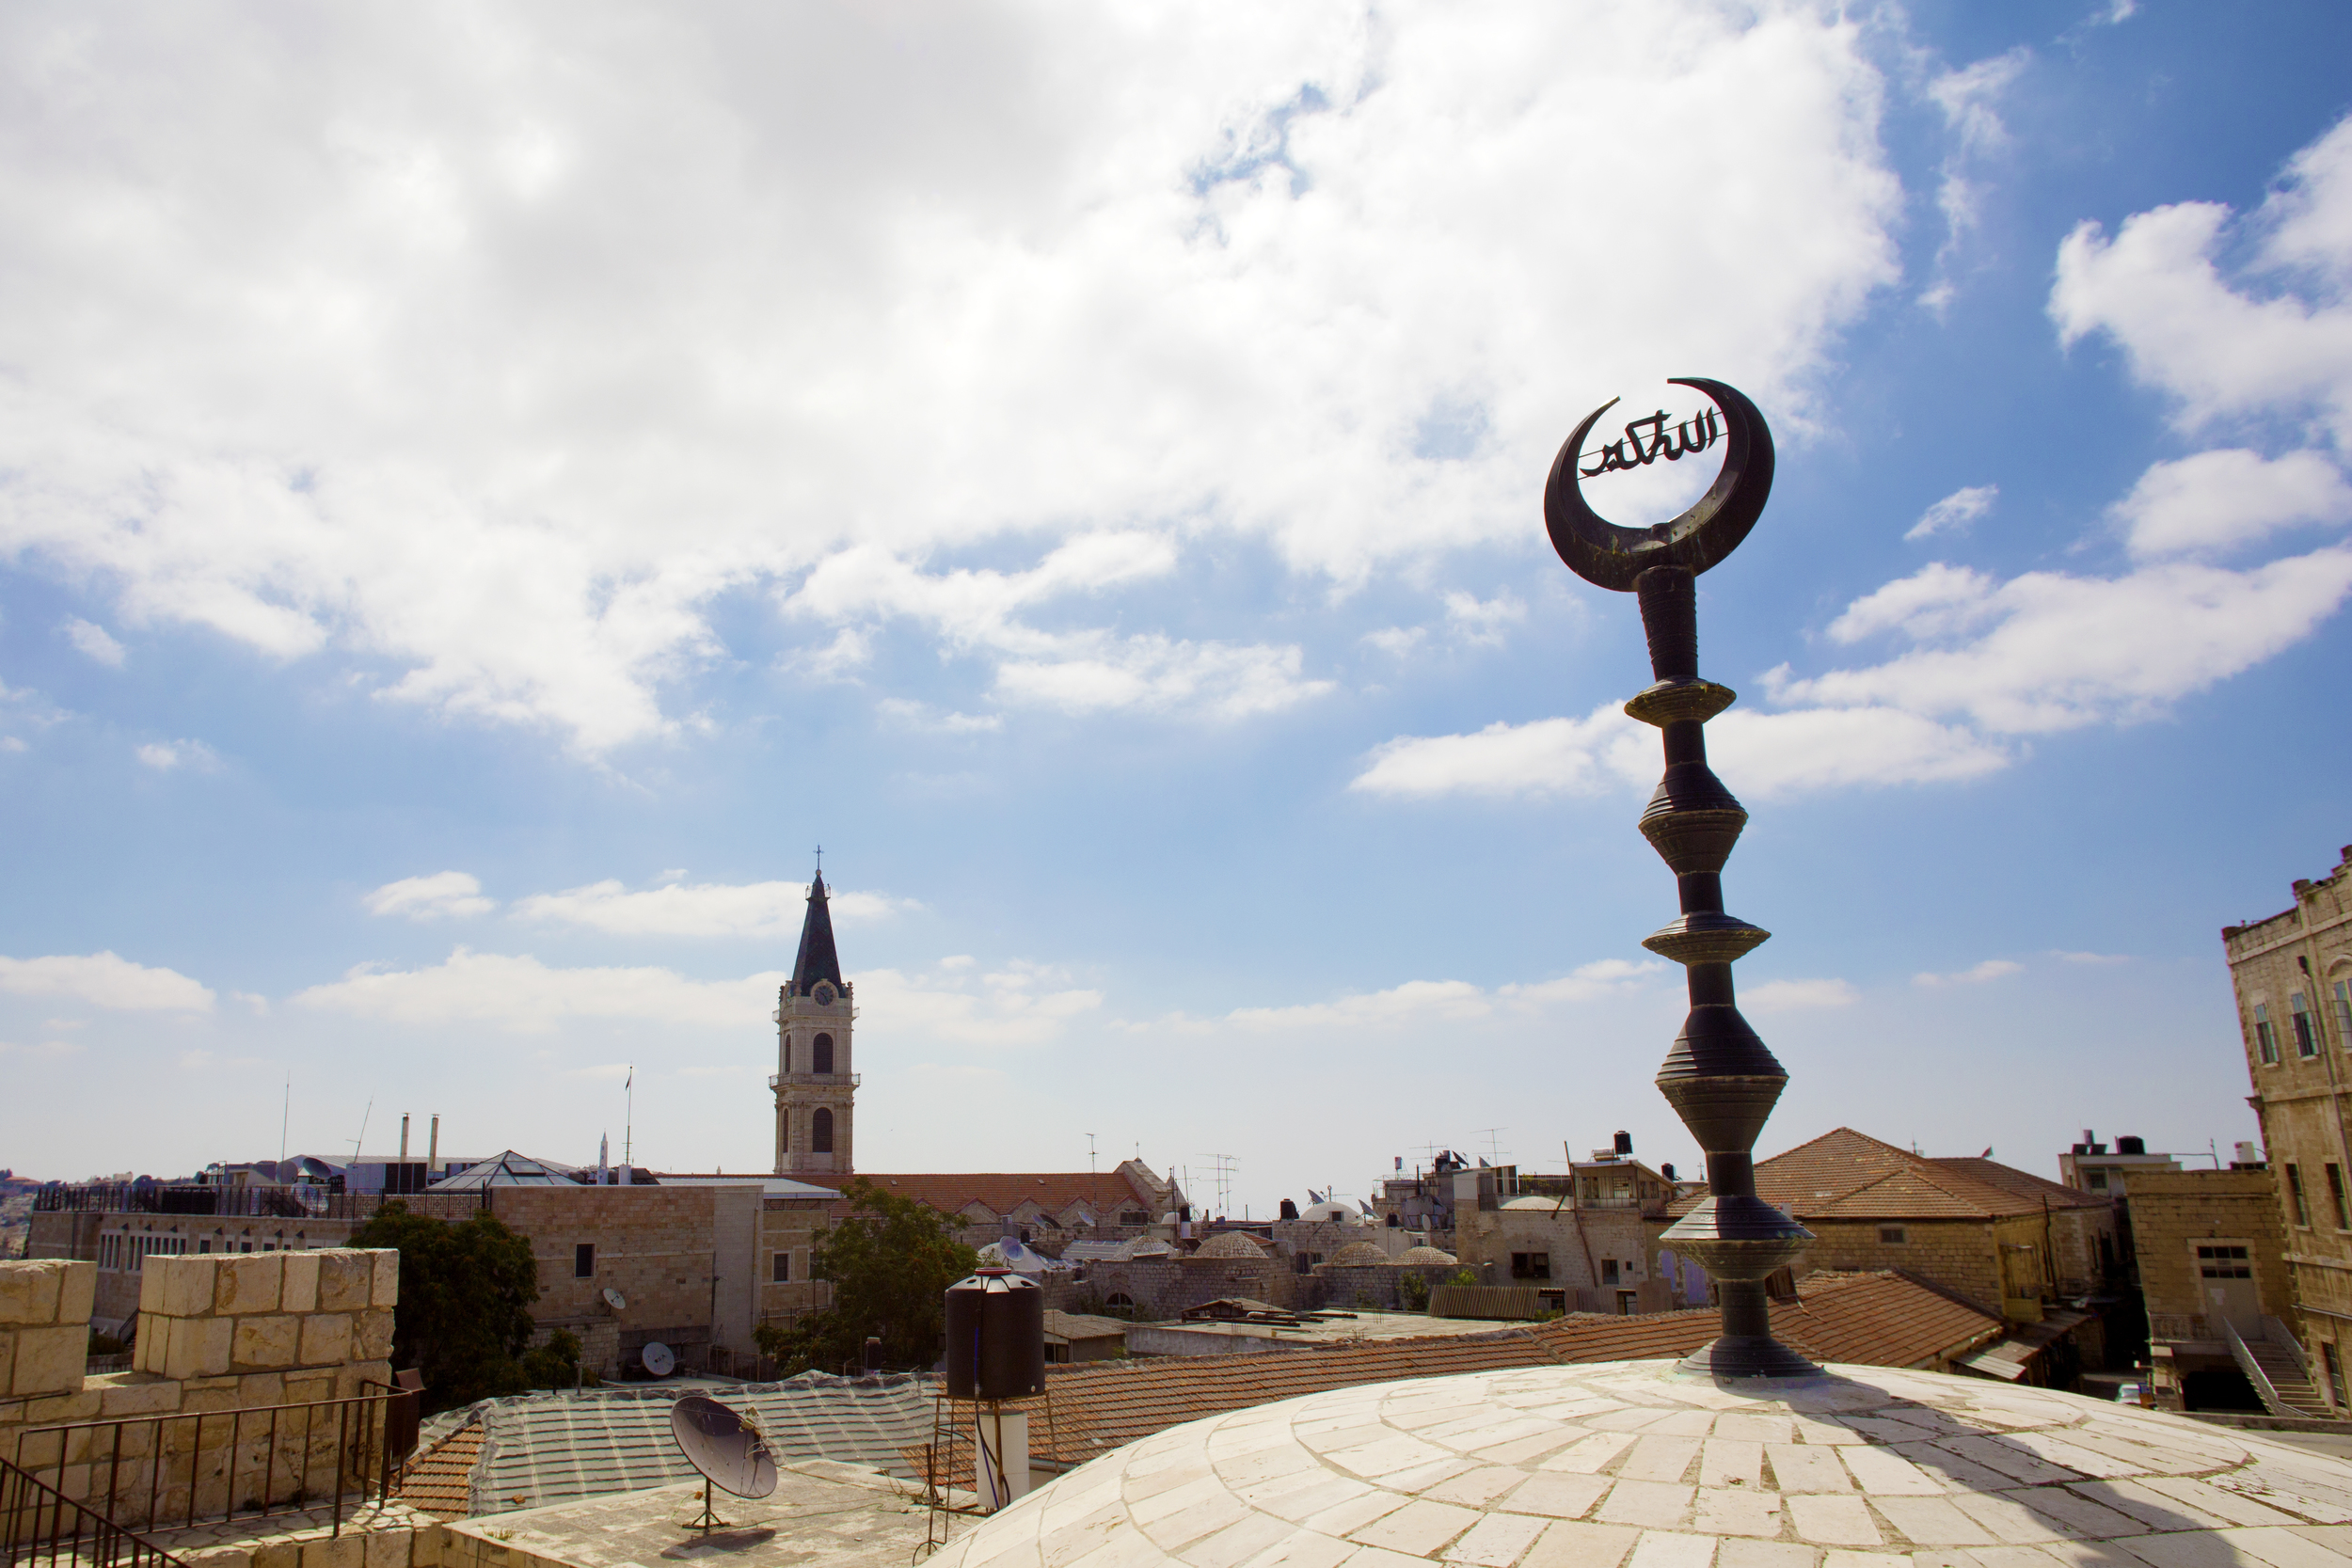 MTR_israel_jerusalem-mosque+churhc.jpg